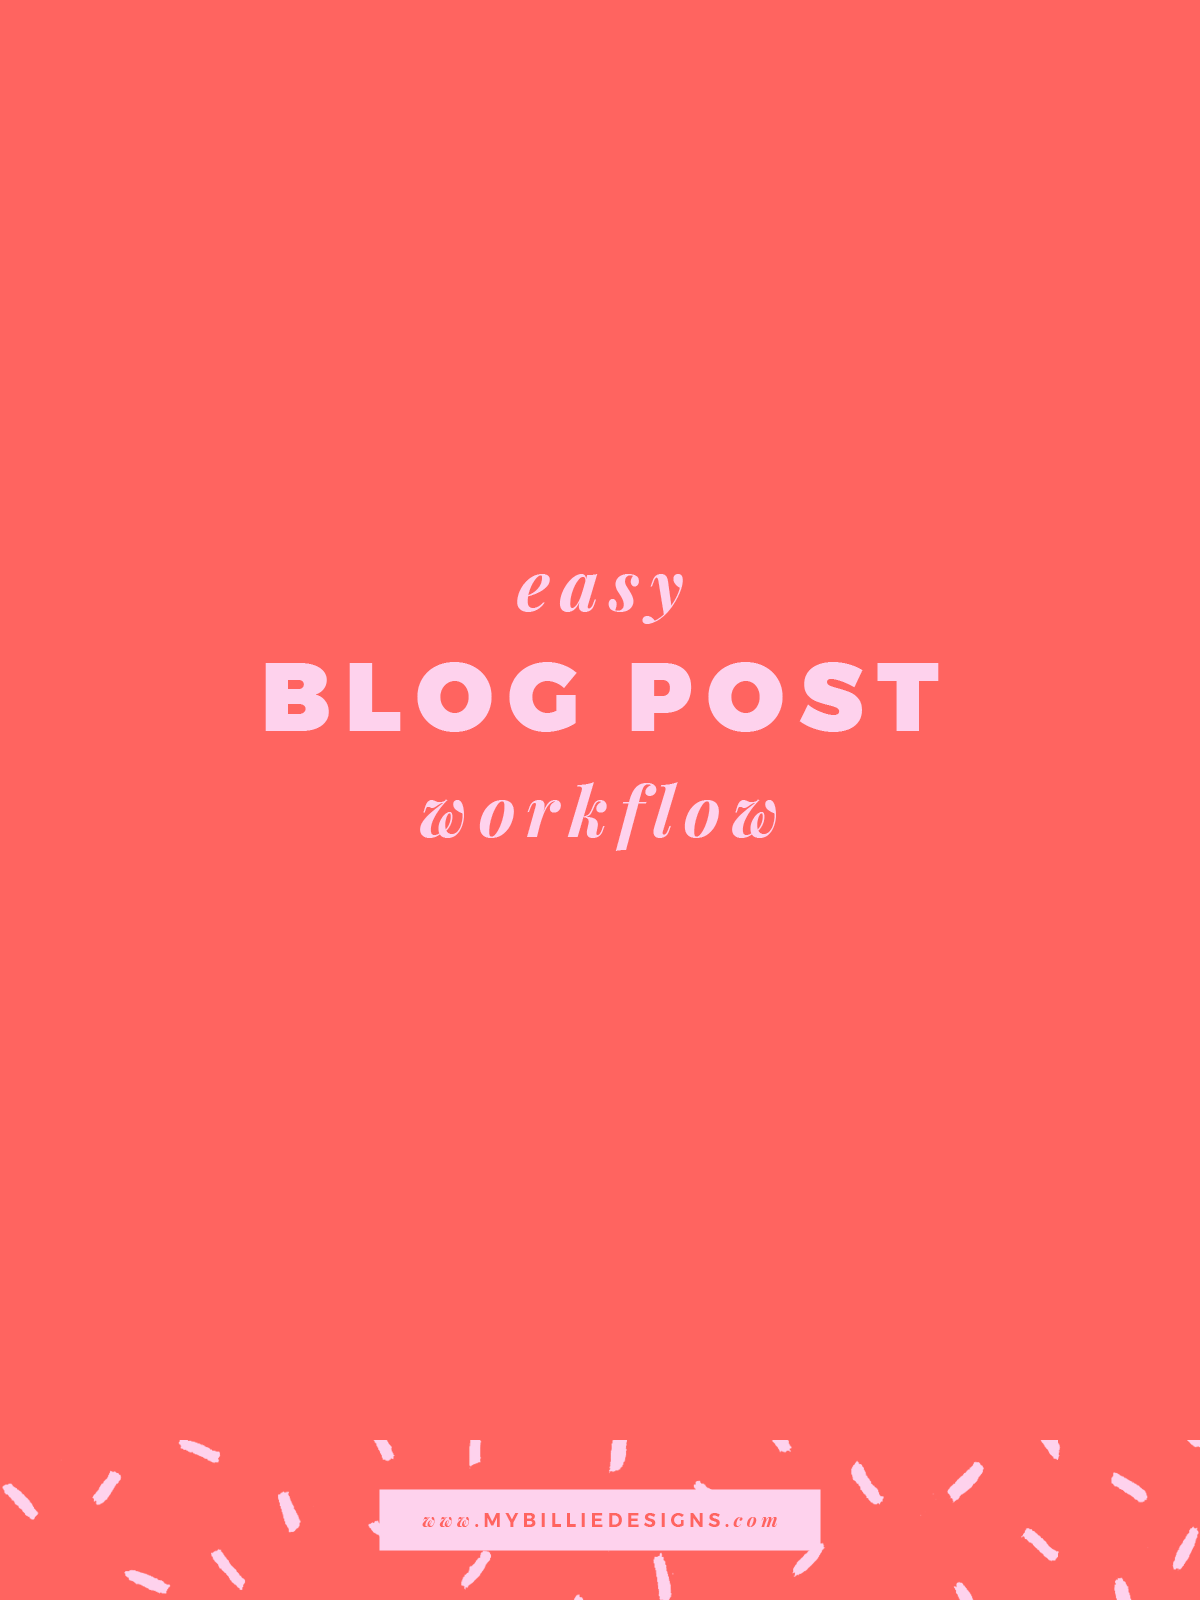 Here's an easy blog post workflow. Everything you should do before and after hitting publish! Click through to read →